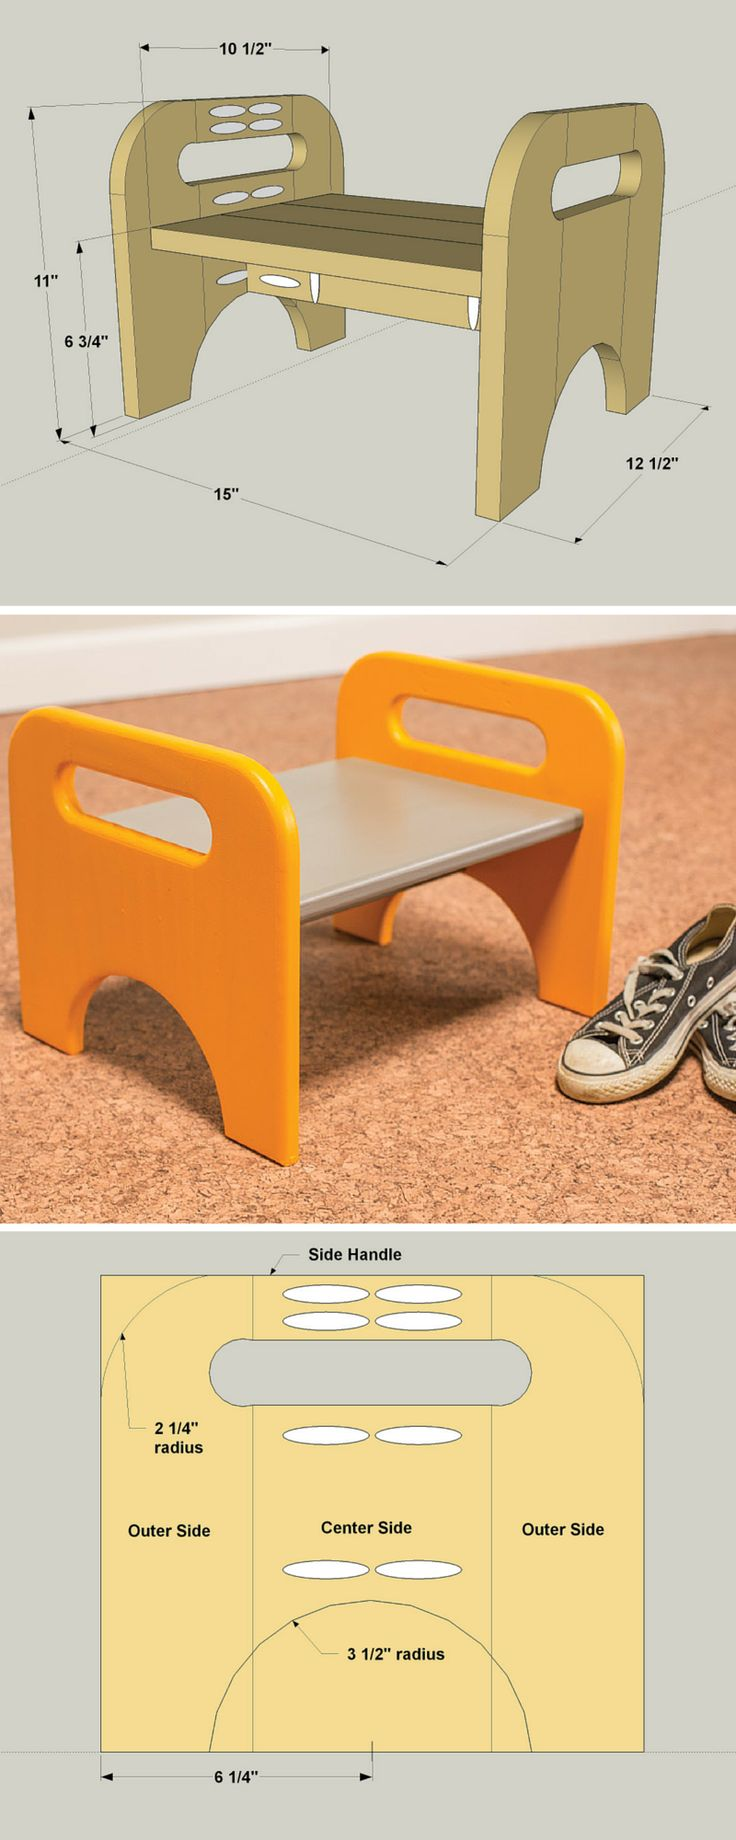 This step stool is a great way to help kids get a little extra height for  sc 1 st  Pinterest & Best 25+ Step stools ideas on Pinterest | Ladders and step stools ... islam-shia.org